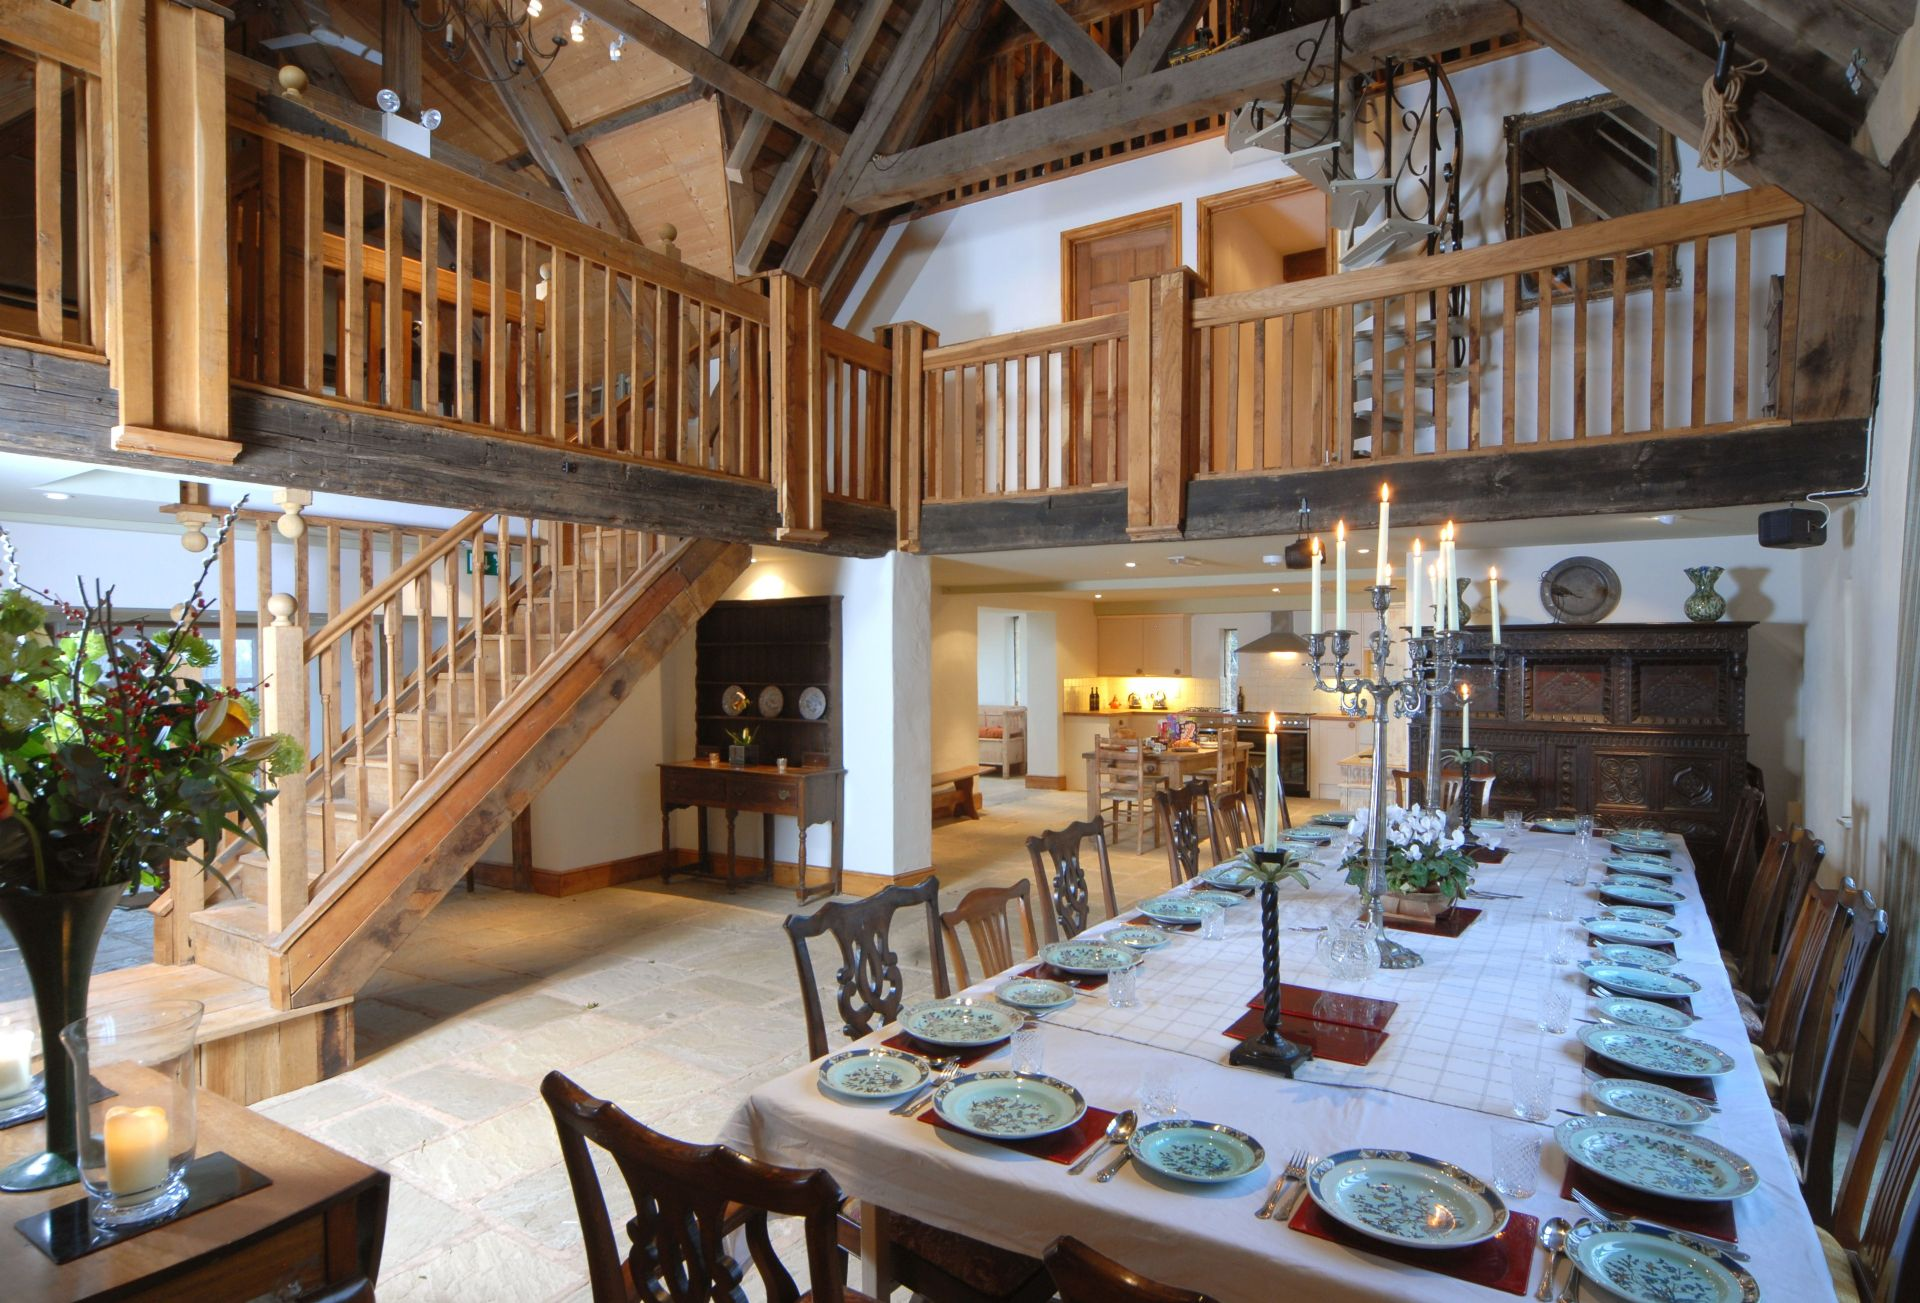 Watery Park Barn Ground floor:  Large, galleried dining area